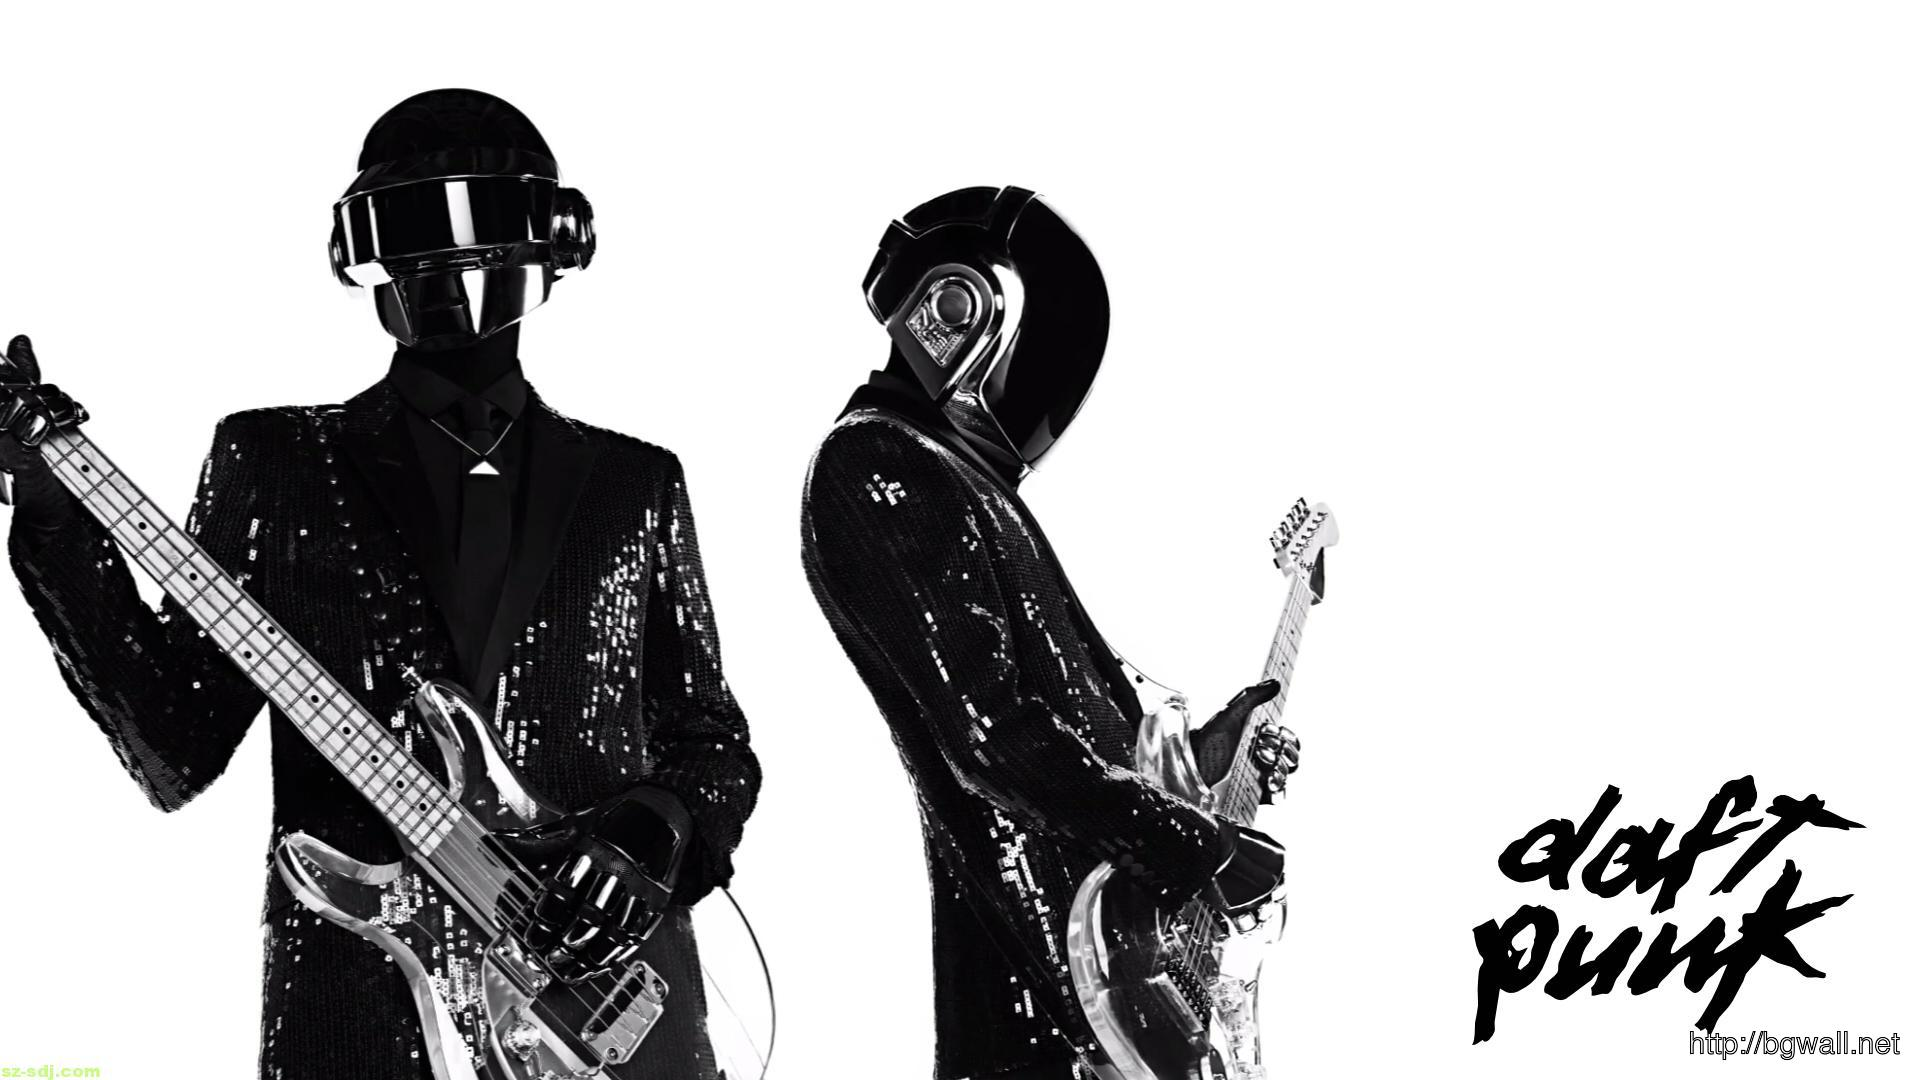 Black White Daft Punk Wallpaper - Background Wallpaper HD